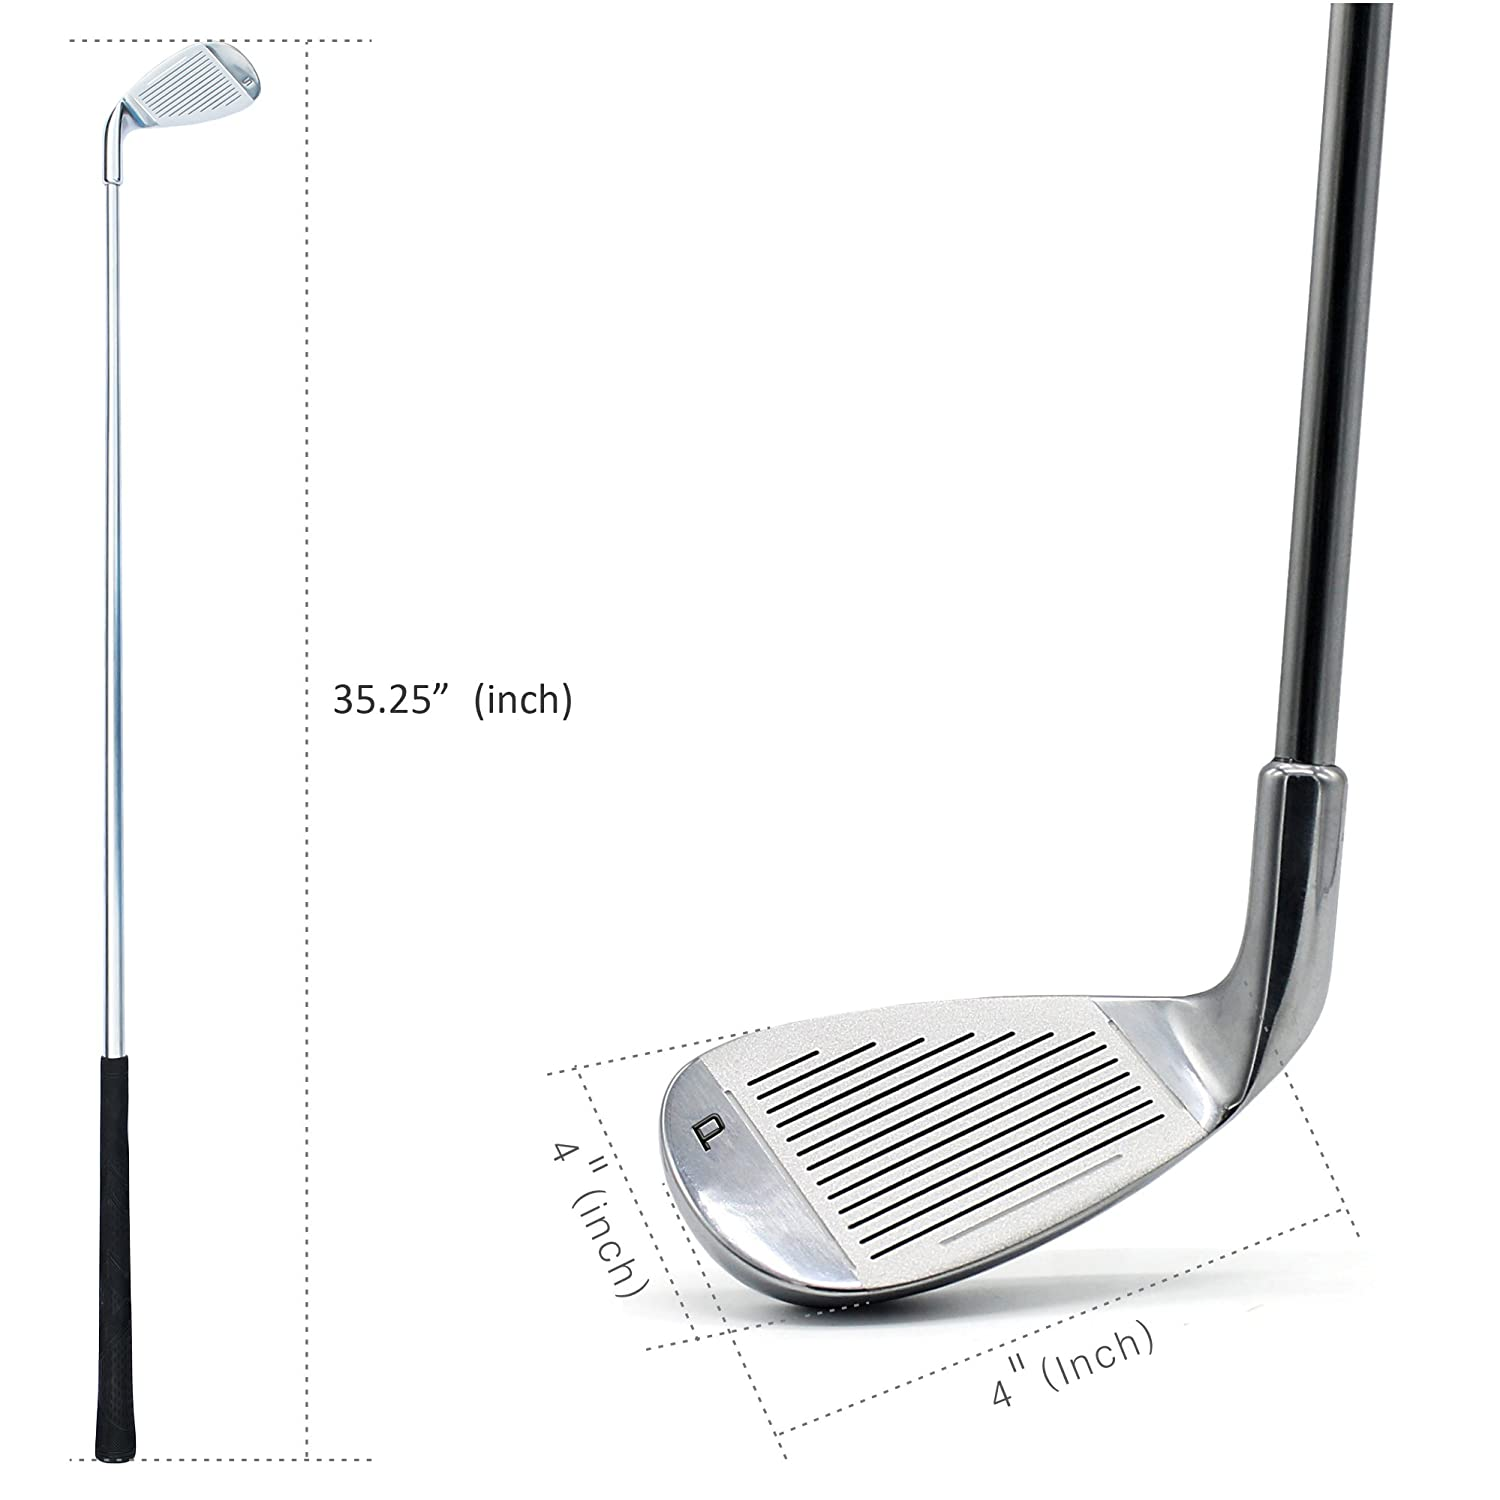 Amazon.com: gooftec # 5 de golf hierro Club, 27 grados para ...